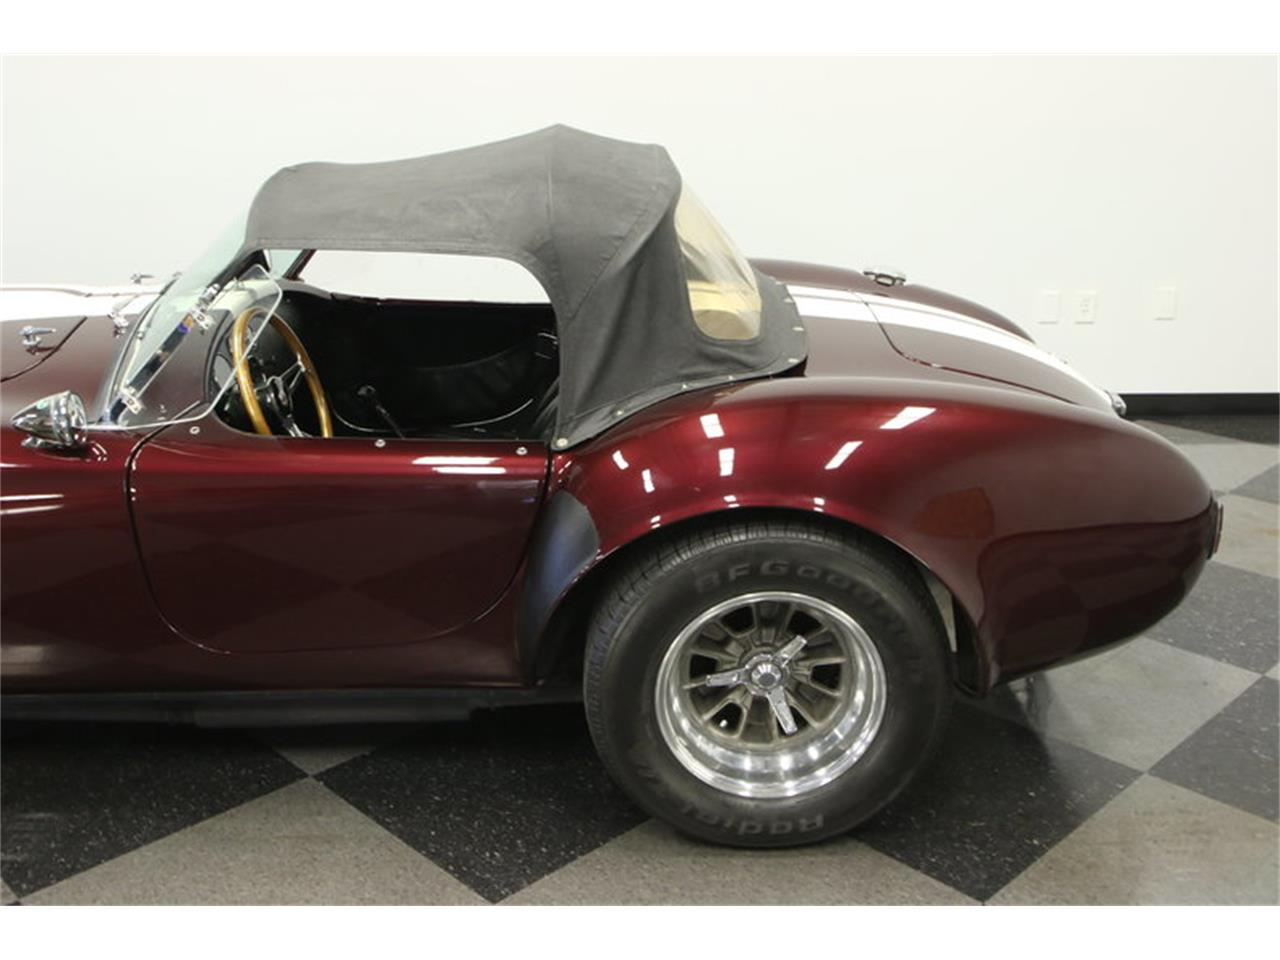 For Sale: 1965 Shelby Cobra 427 ERA in Lutz, Florida